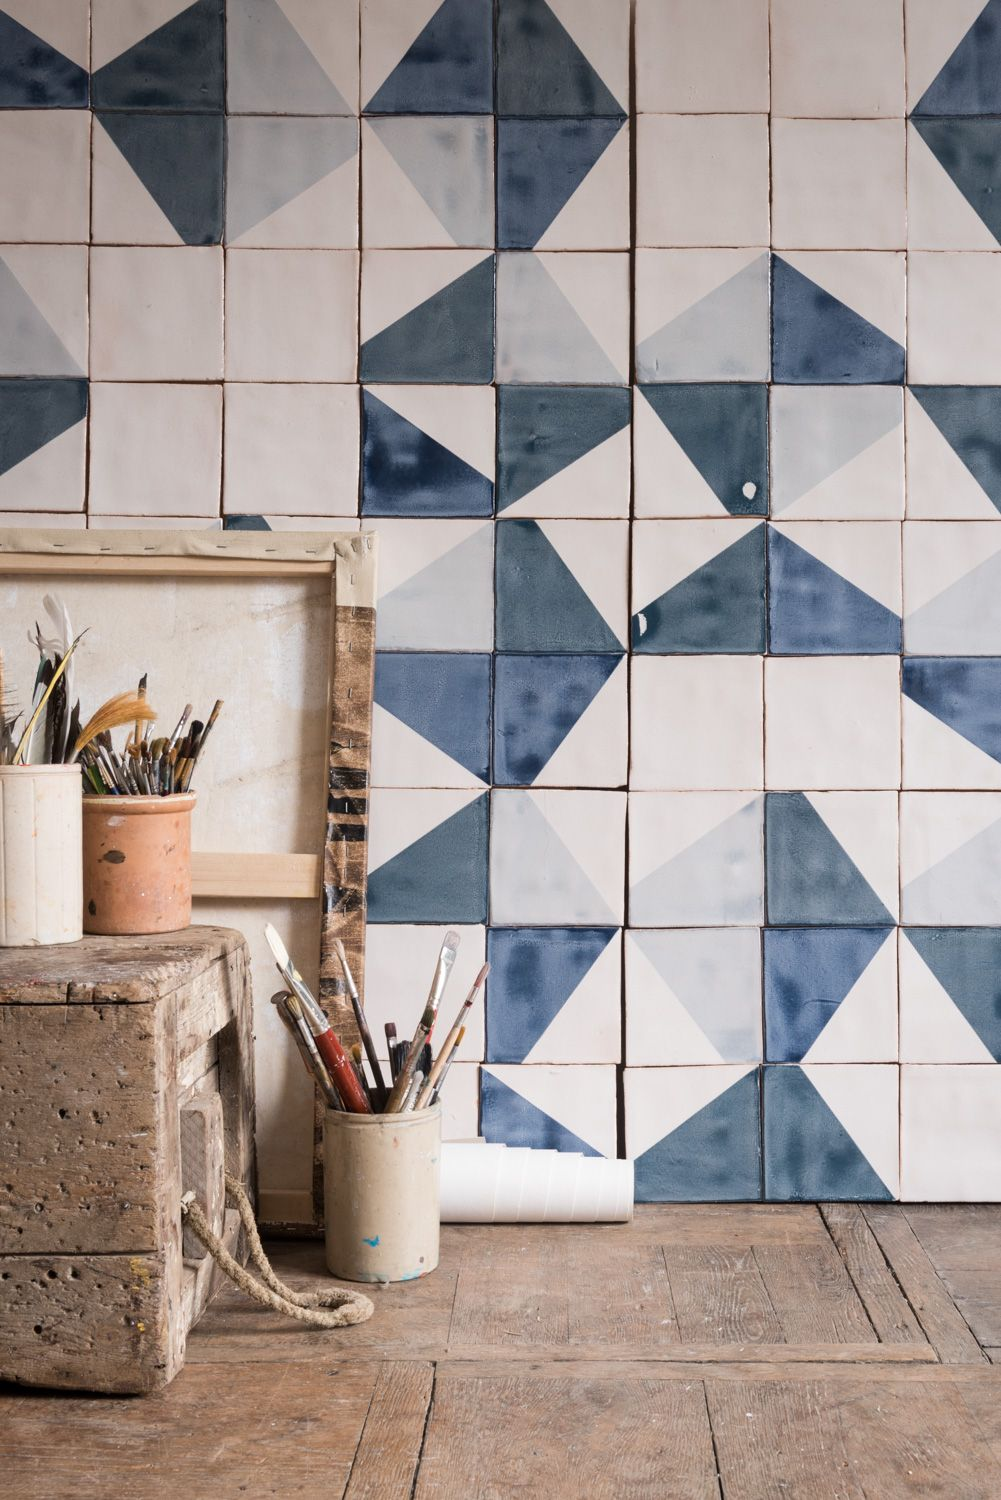 Our New Recubed Blue tiles in a fresh blue palette from Smink Things ...